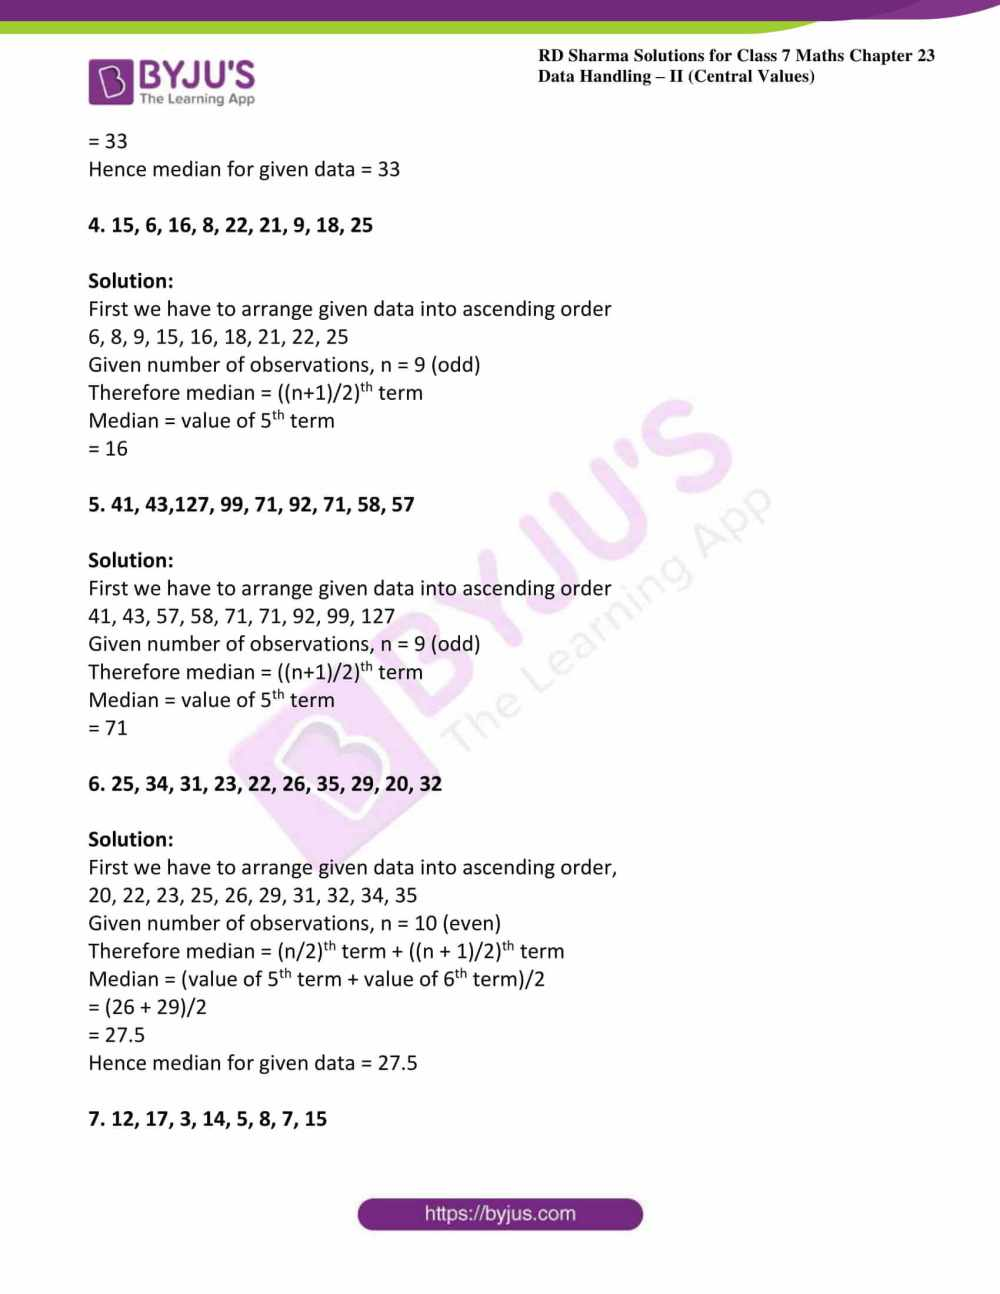 medium resolution of RD Sharma Solutions for Class 7 Maths Chapter 23 - Data Handling - II  (Central Values) Exercise 23.3 - Access free PDF